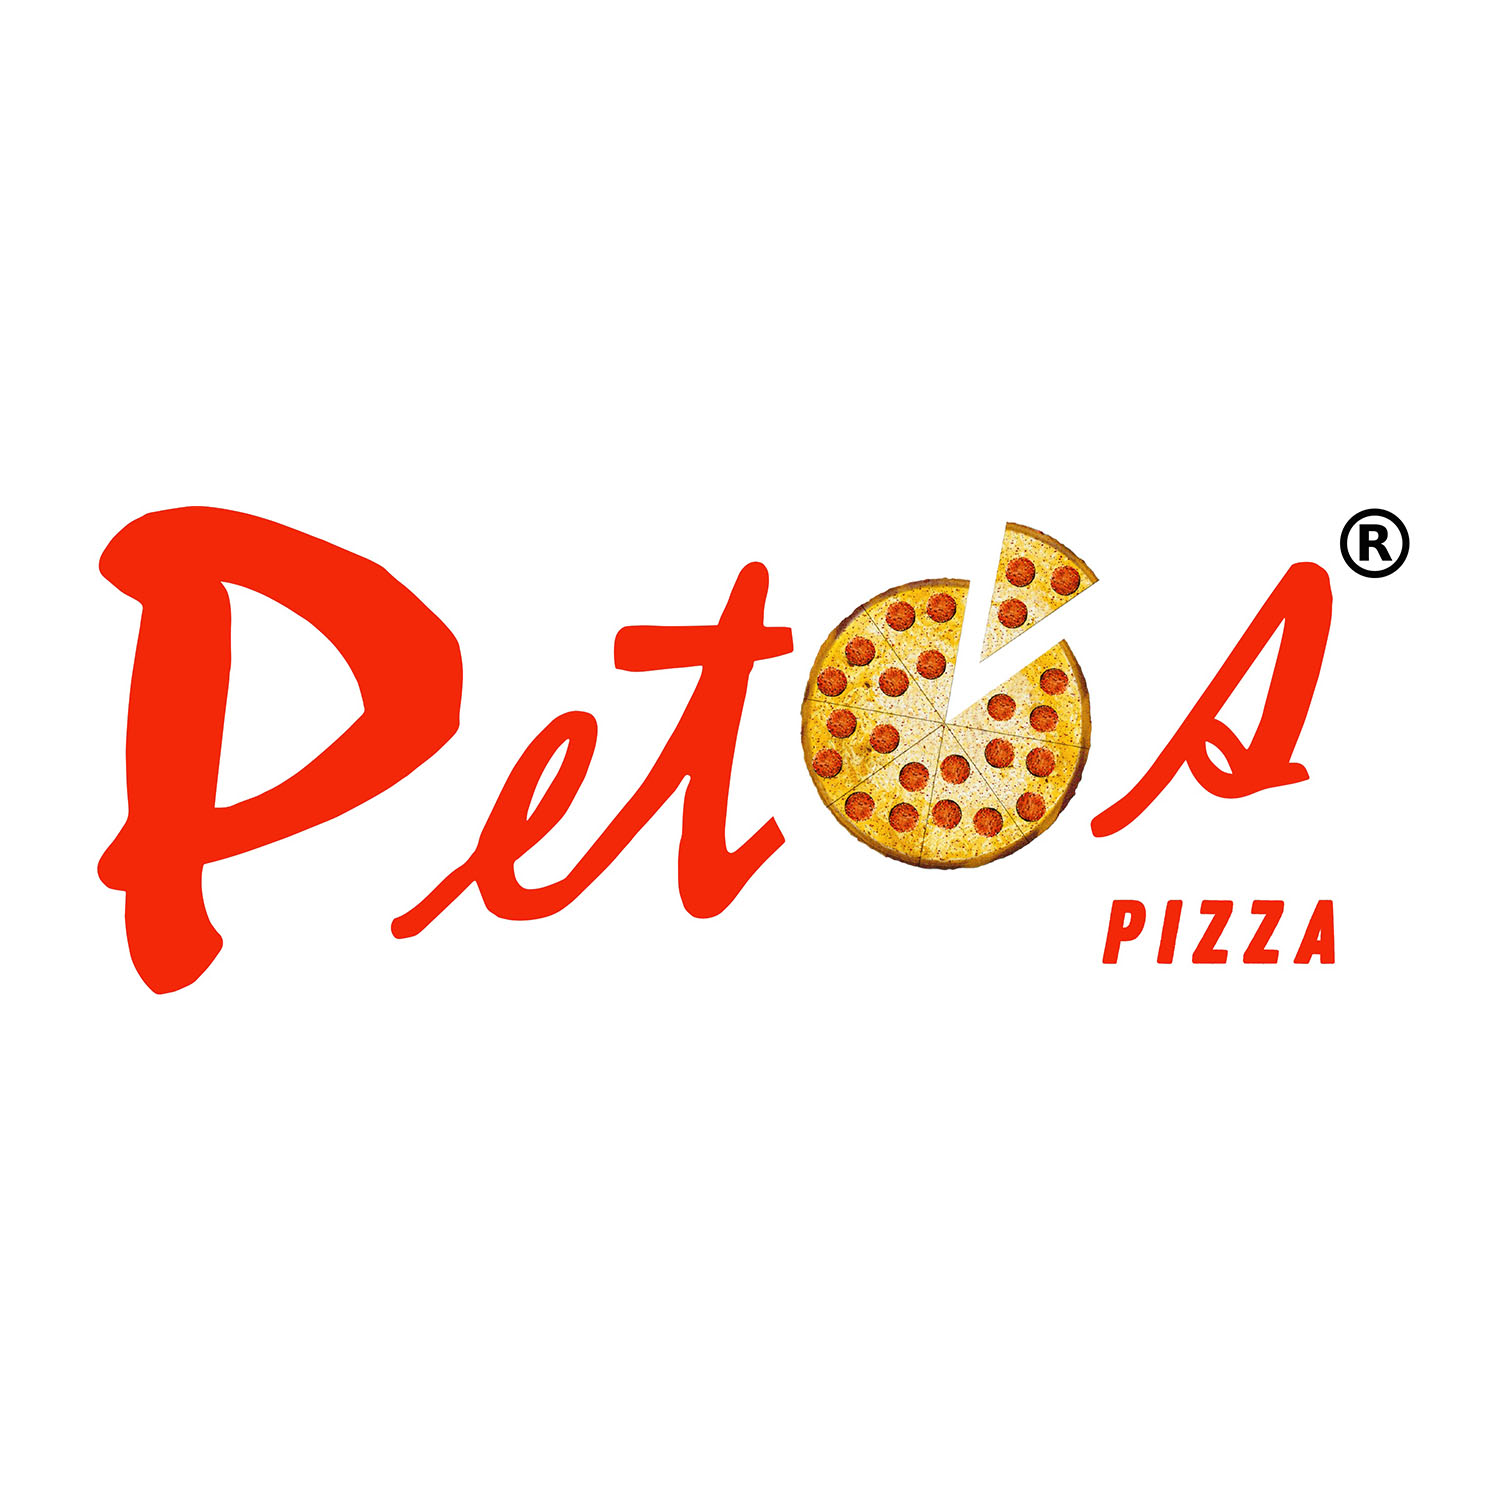 Peto's Pizza